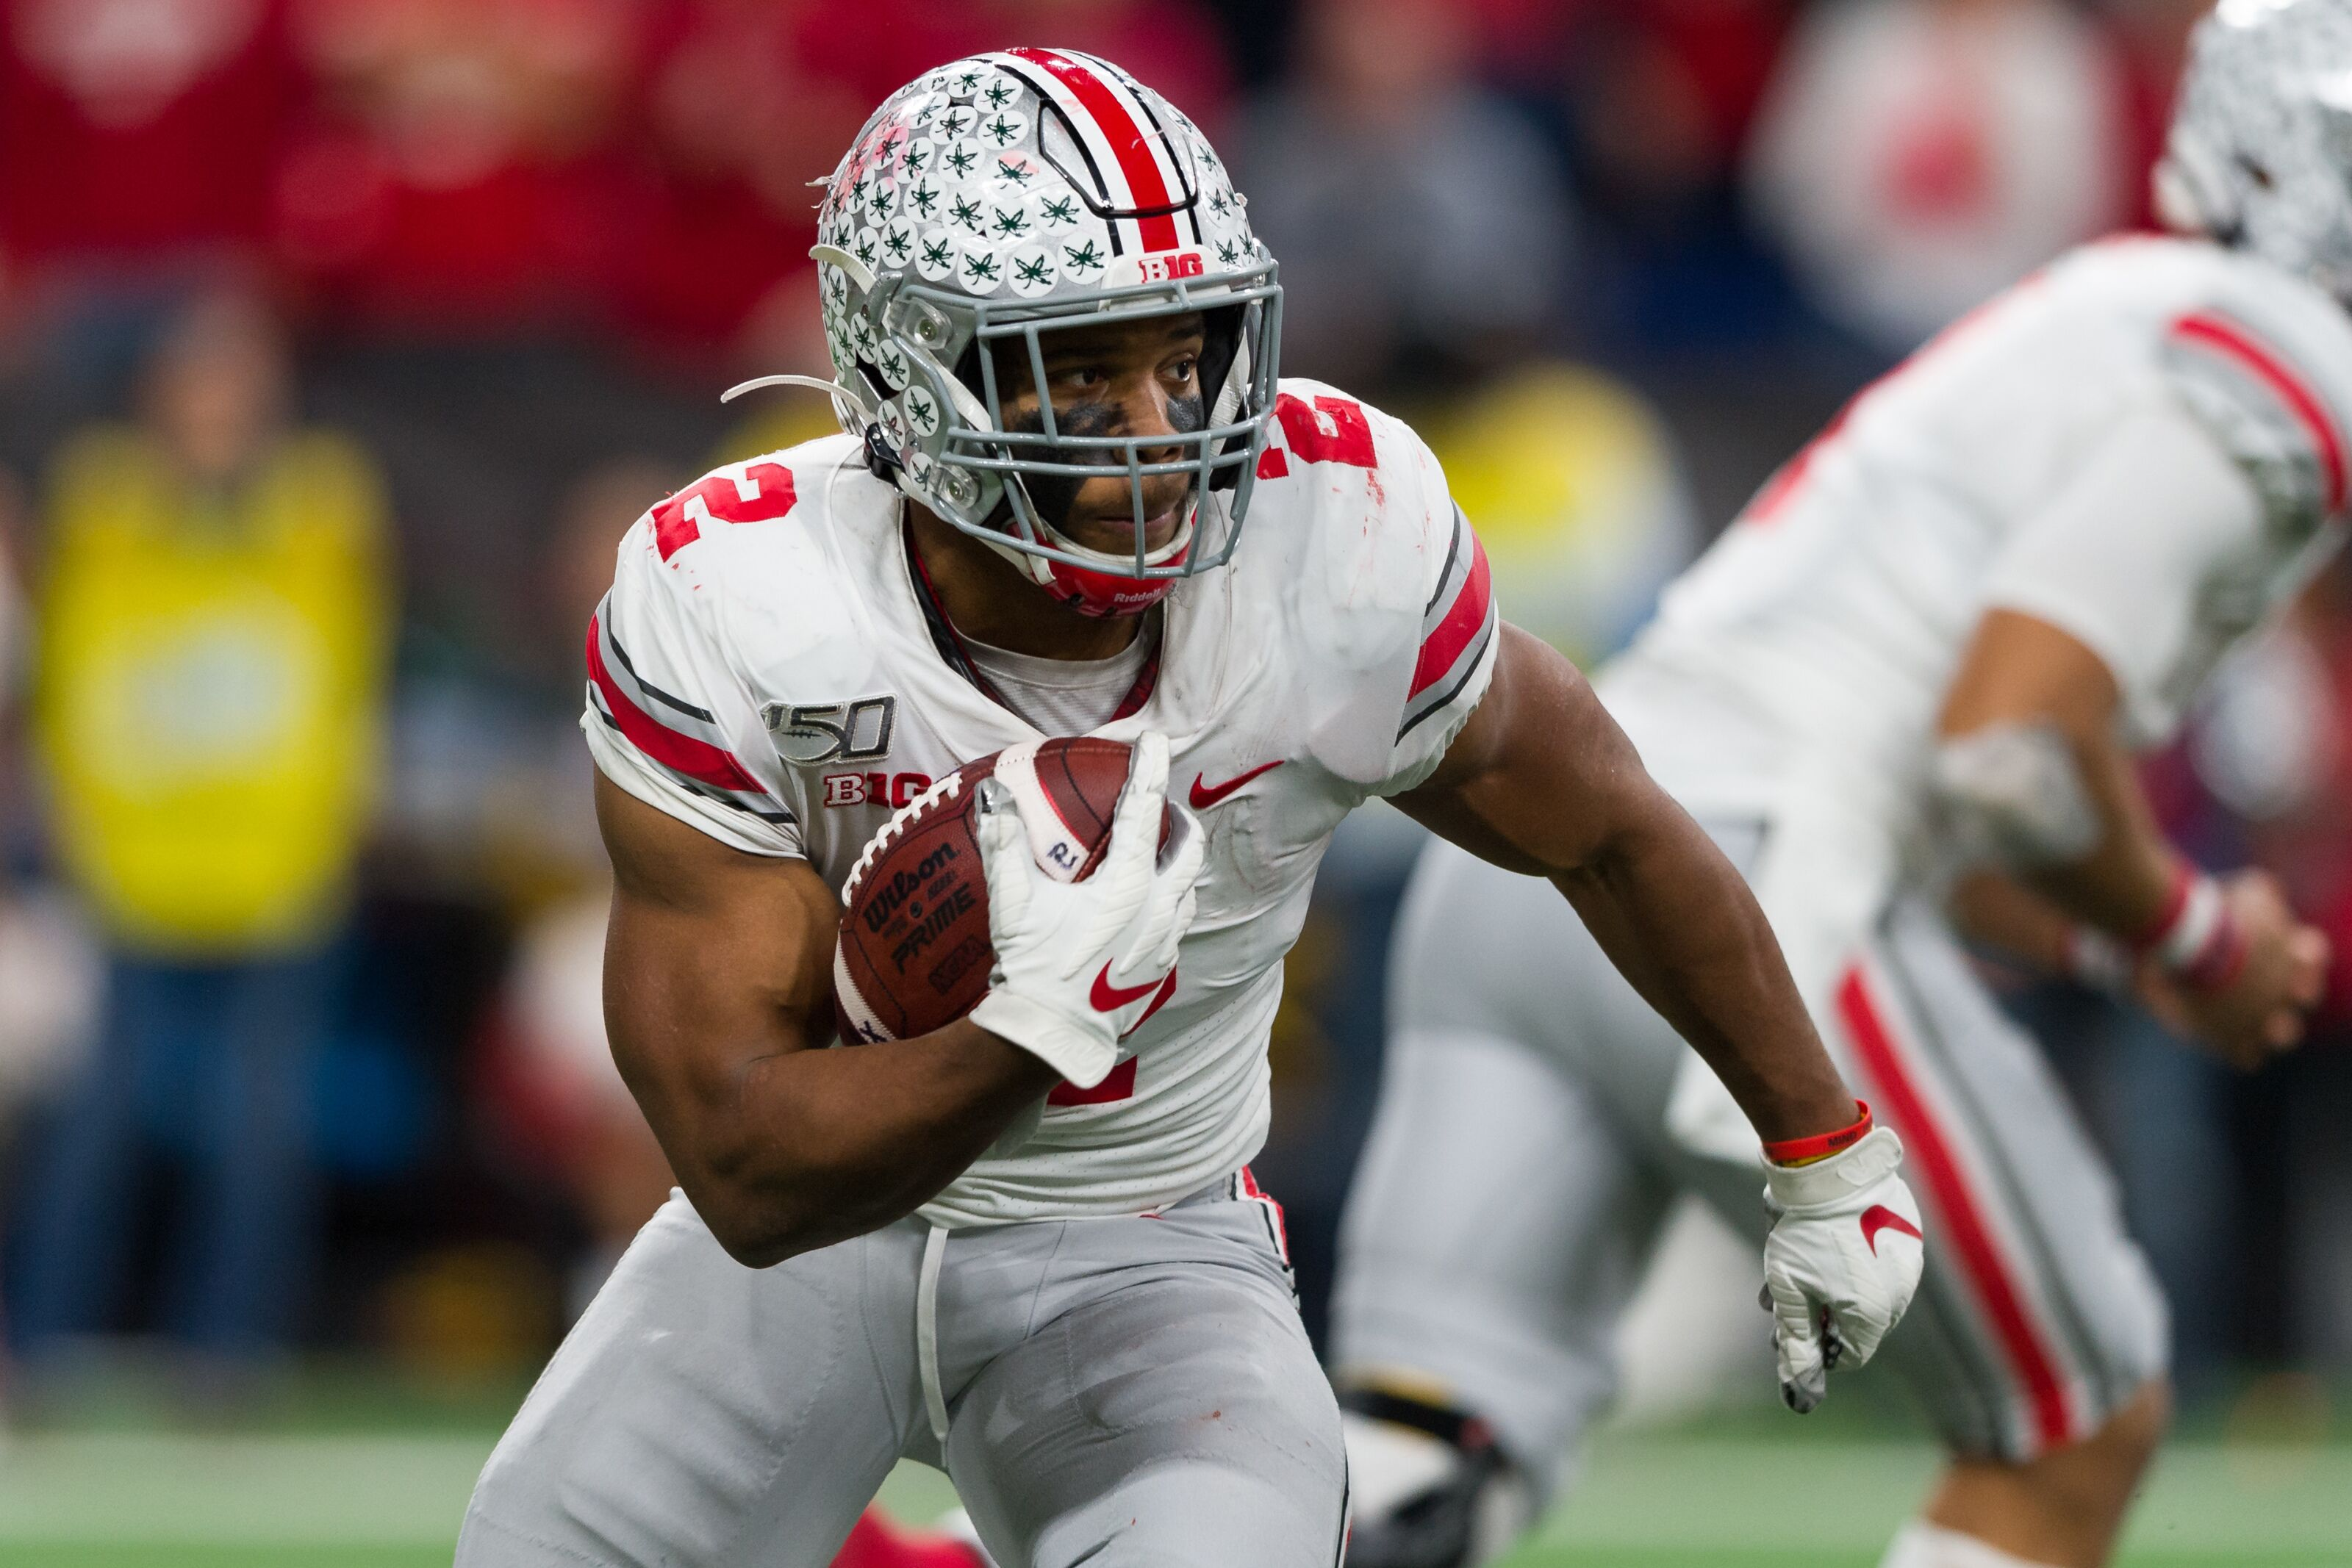 Ohio State wins Big Ten but will they lose No. 1 seed in College Football Playoff rankings?